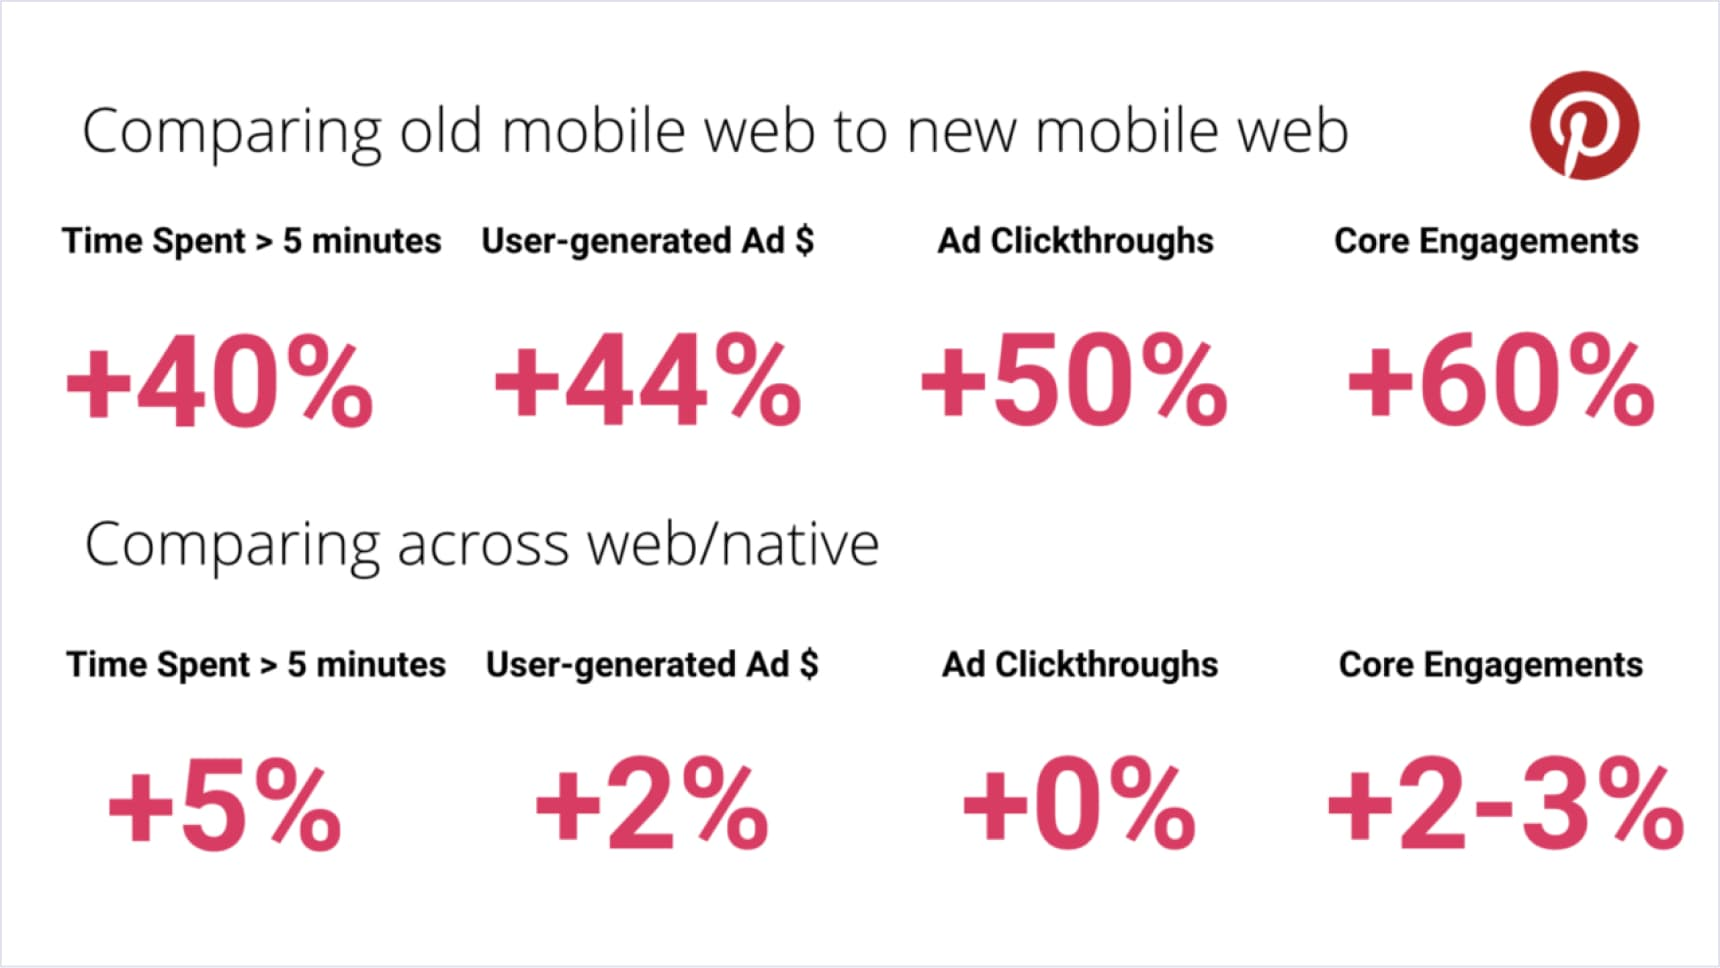 Comparison of Pinterest old and new mobile web (PWA) performance